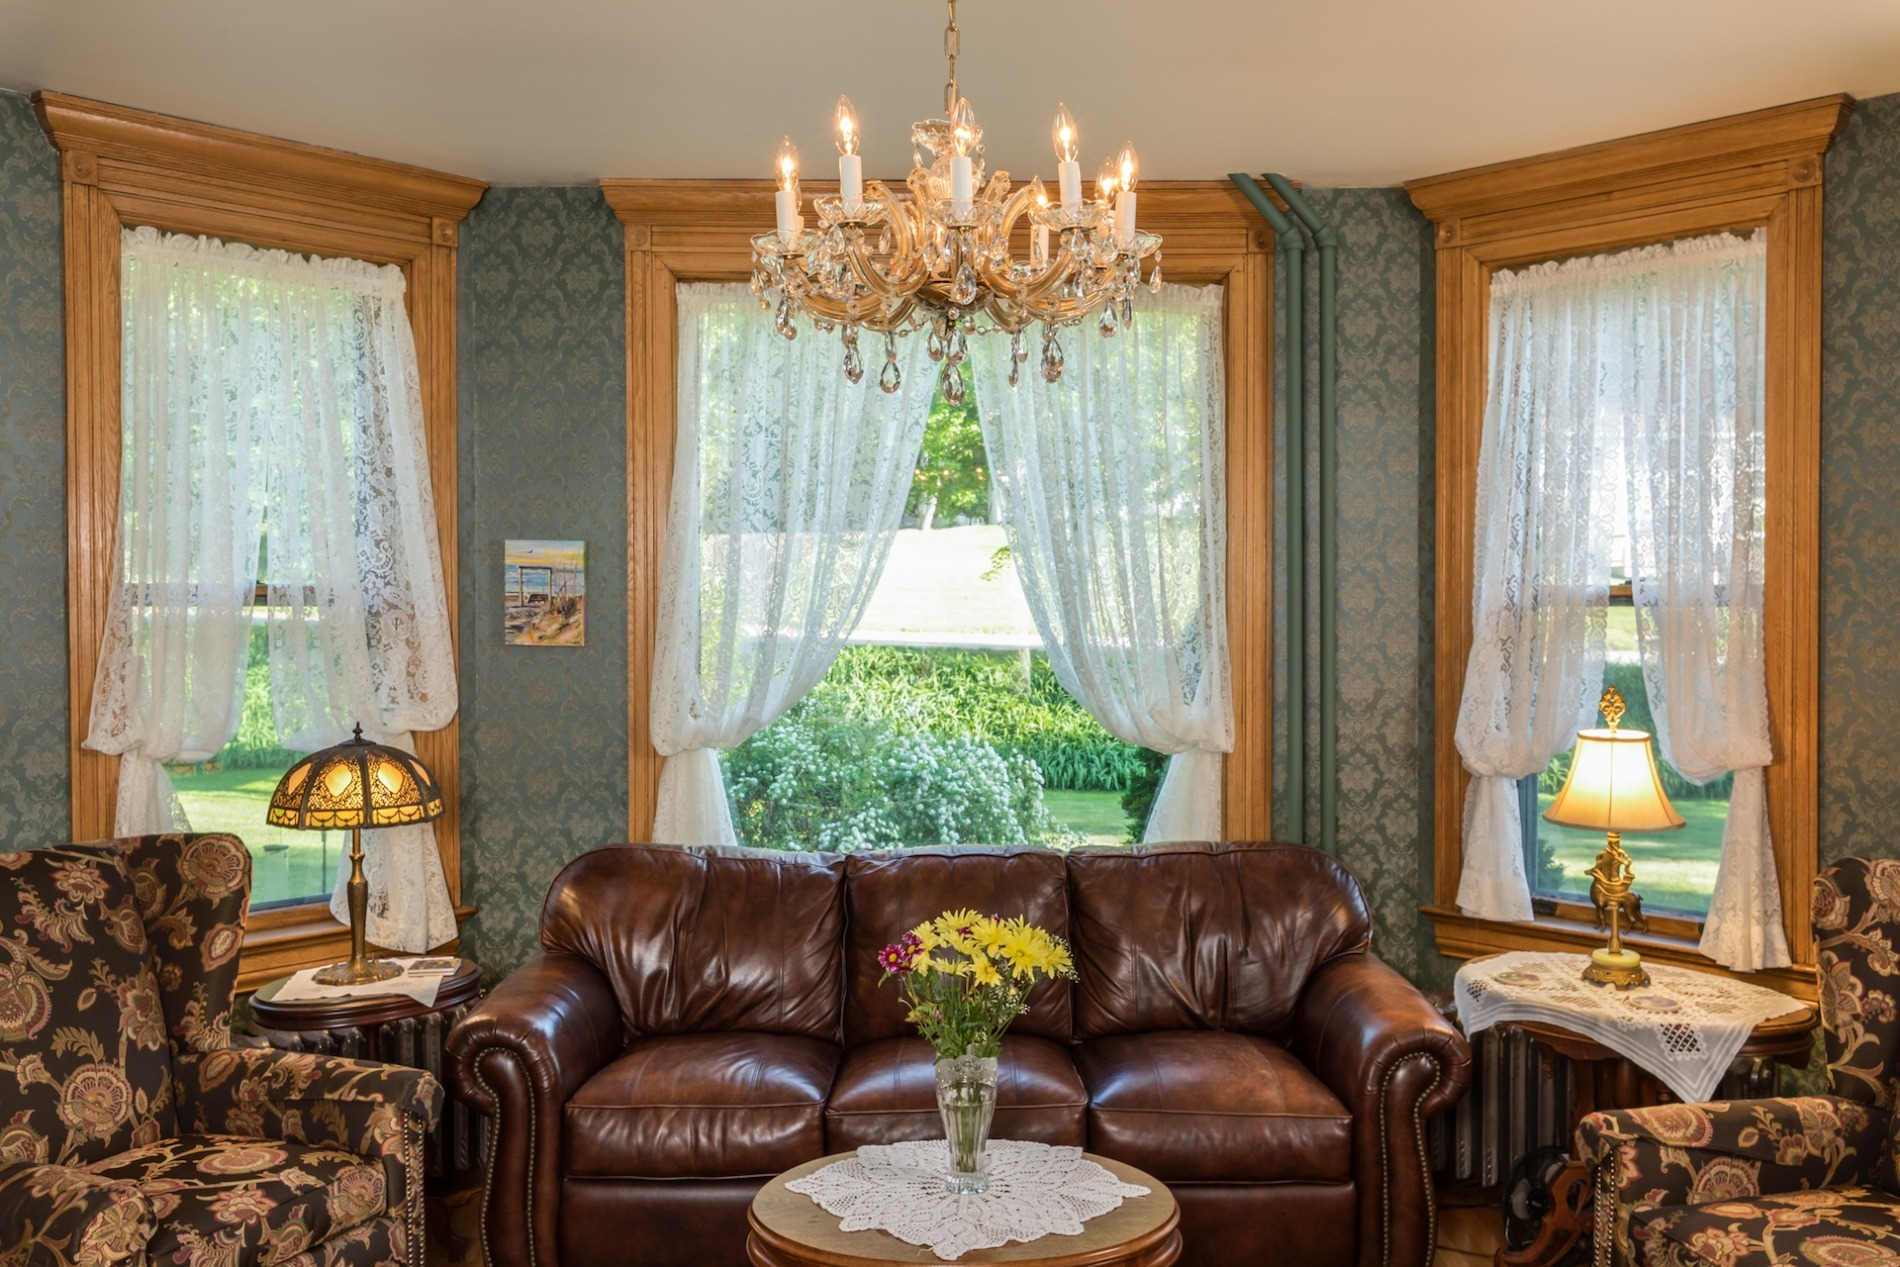 parlor(1) - Habberstad House Bed and Breakfast (1) (1)